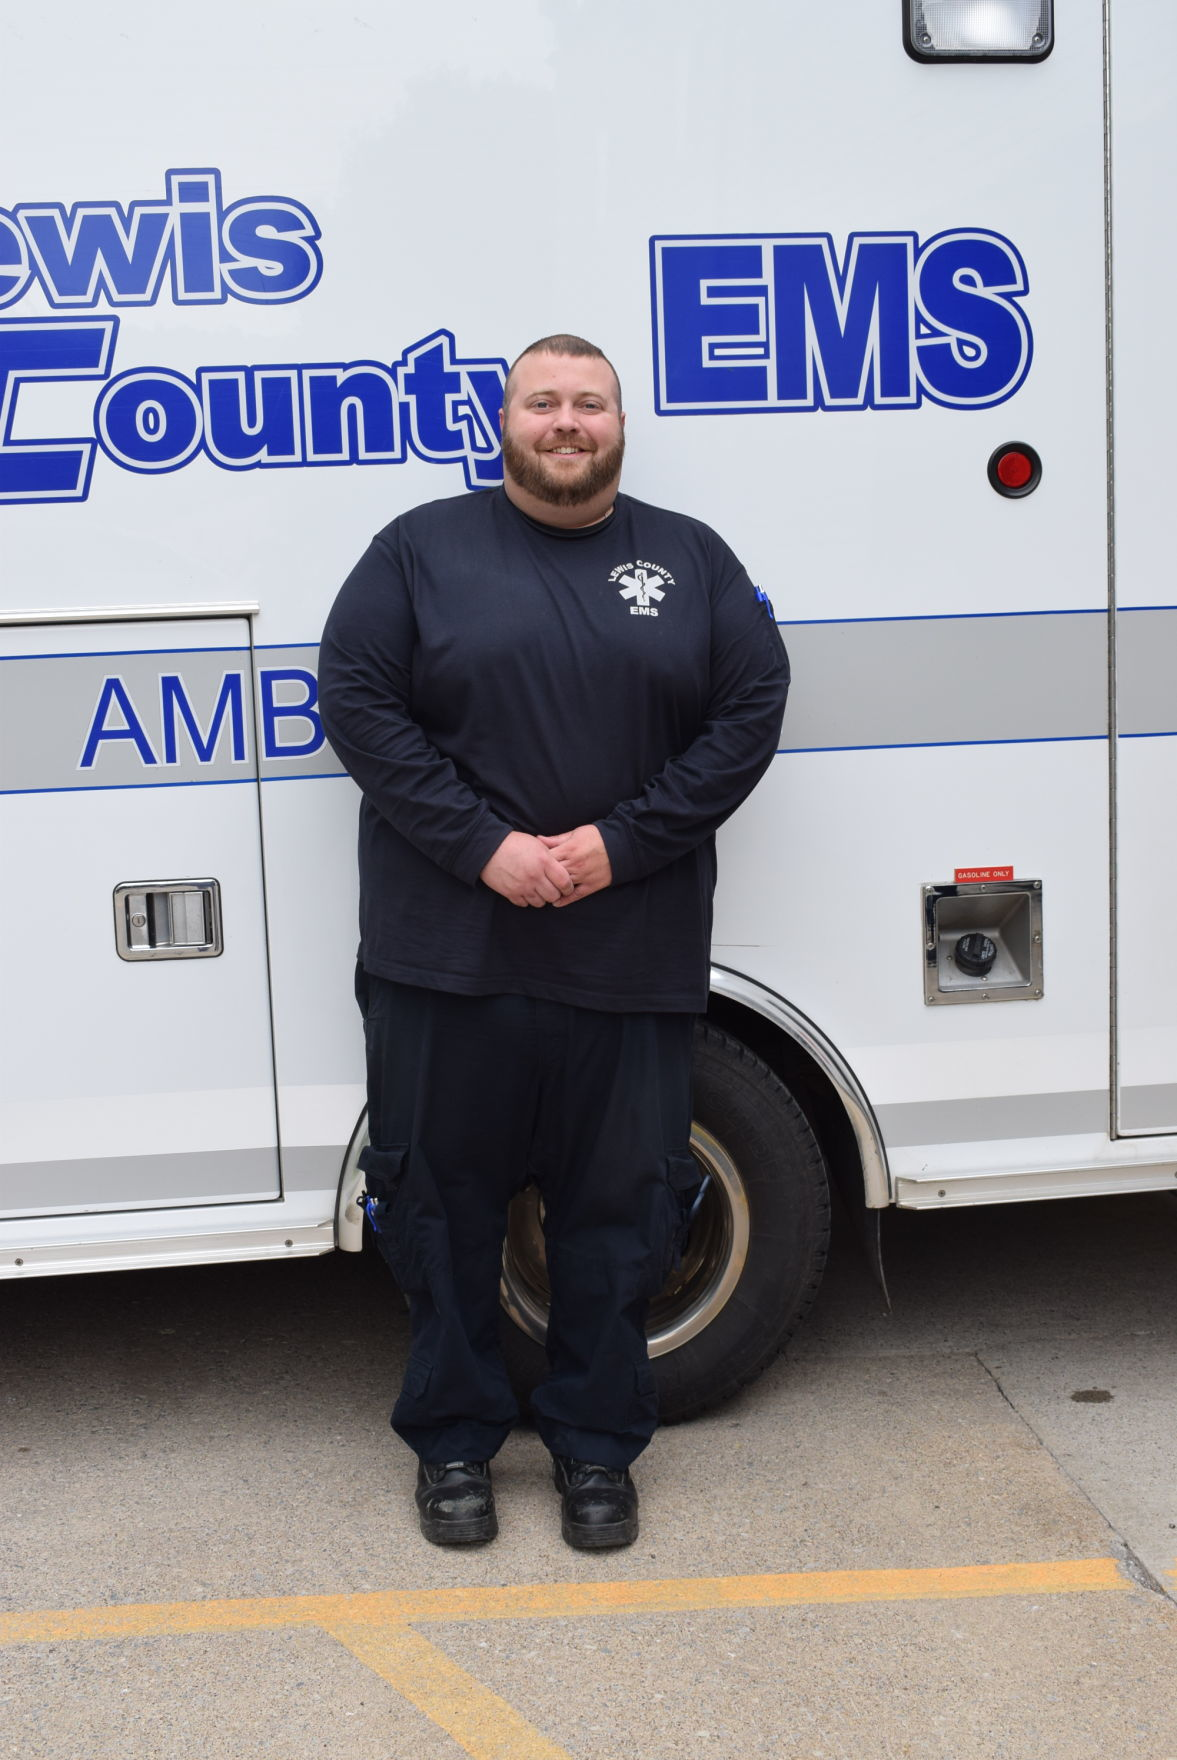 Lewis County's Christopher Lusk named Paramedic of the Year